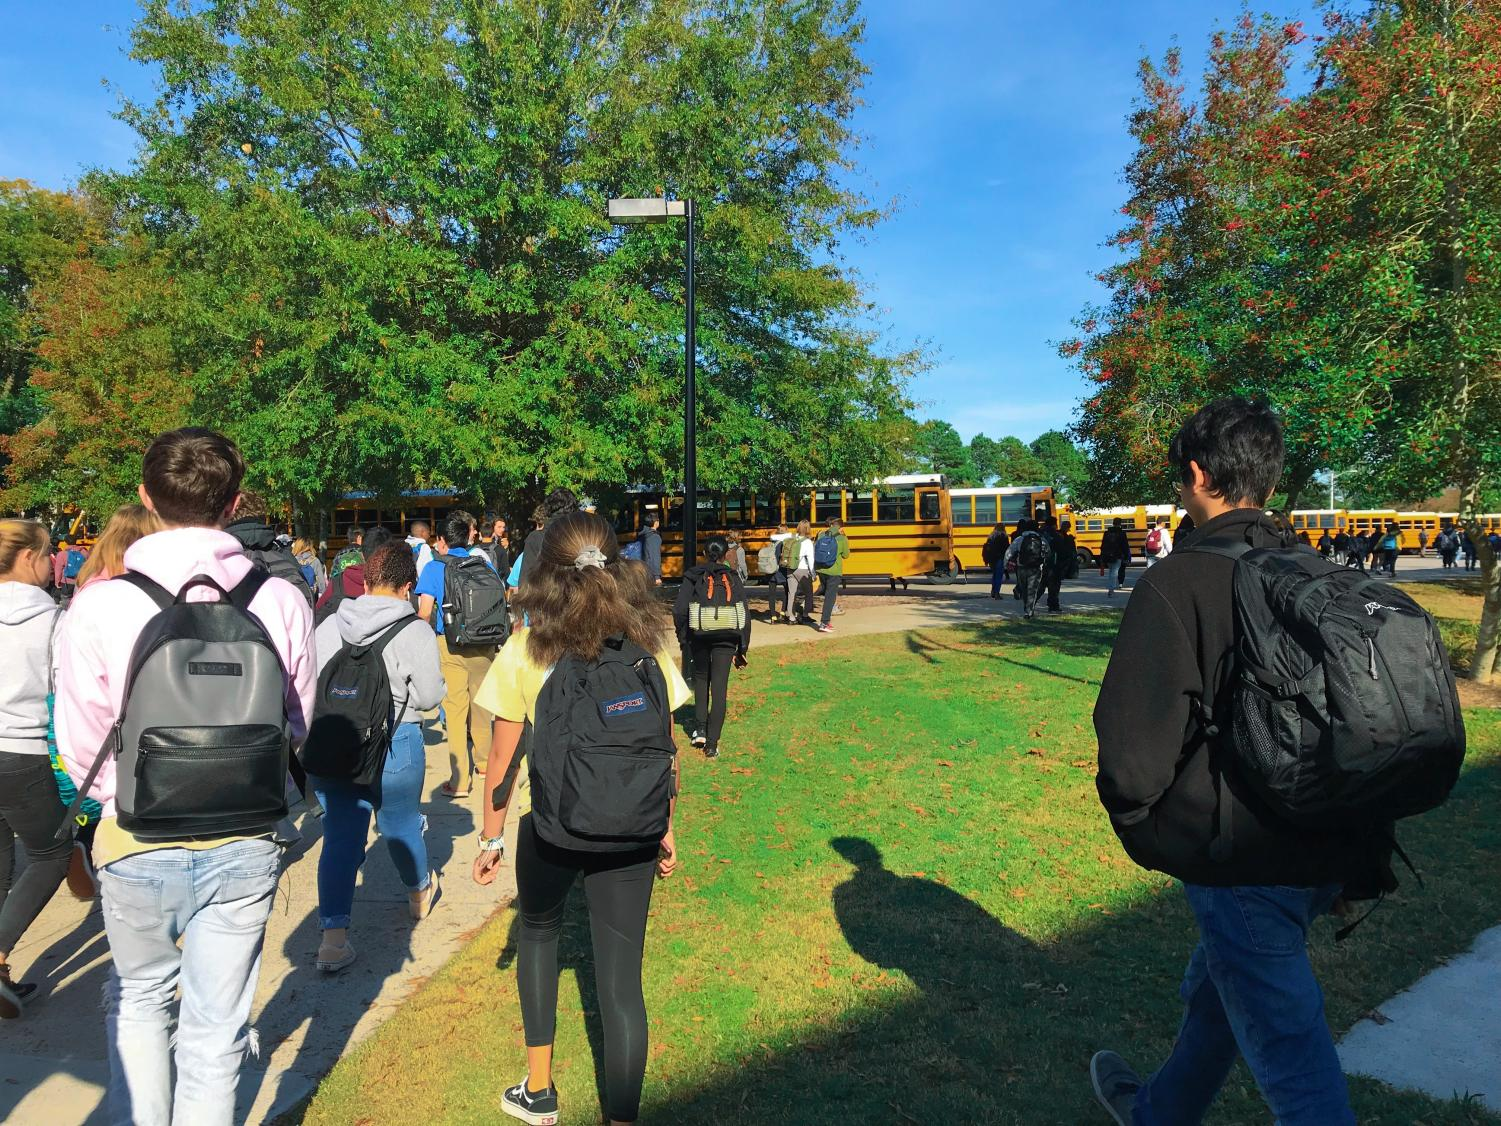 Students make their way to the buses after school at current end time, 2:10 pm.